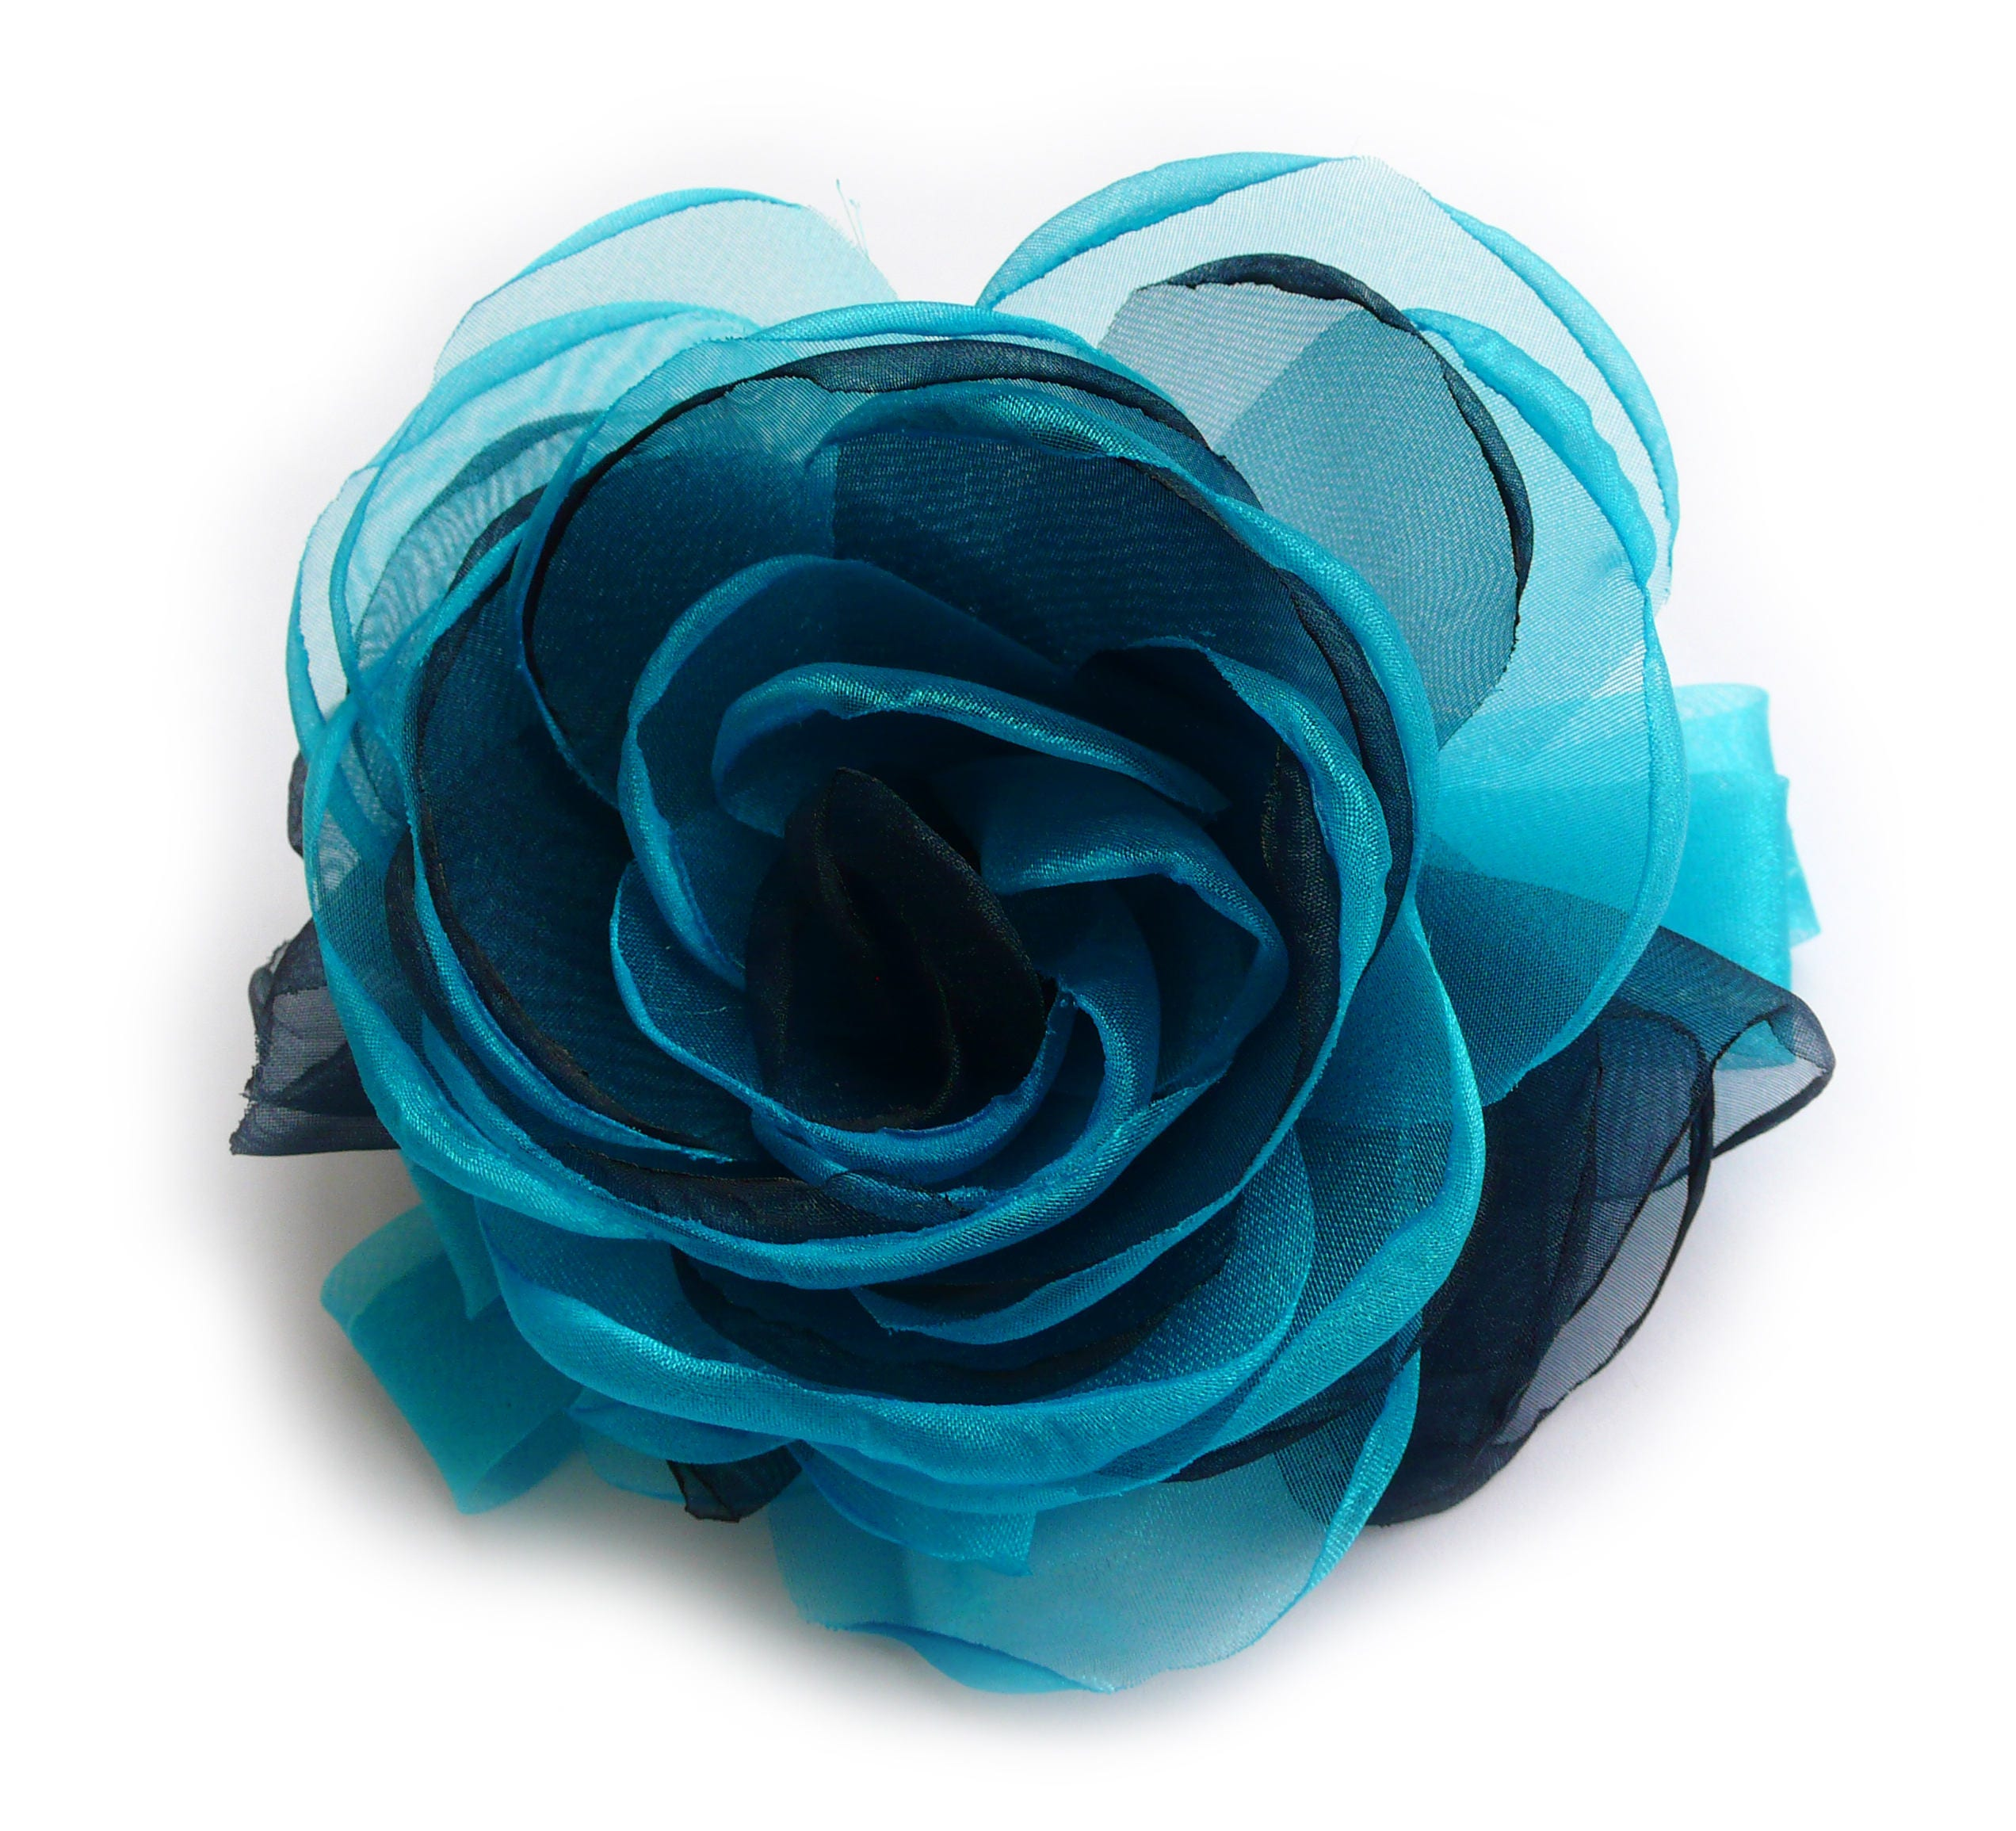 broche fleur en tissu organza couleur bleu marine et etsy. Black Bedroom Furniture Sets. Home Design Ideas